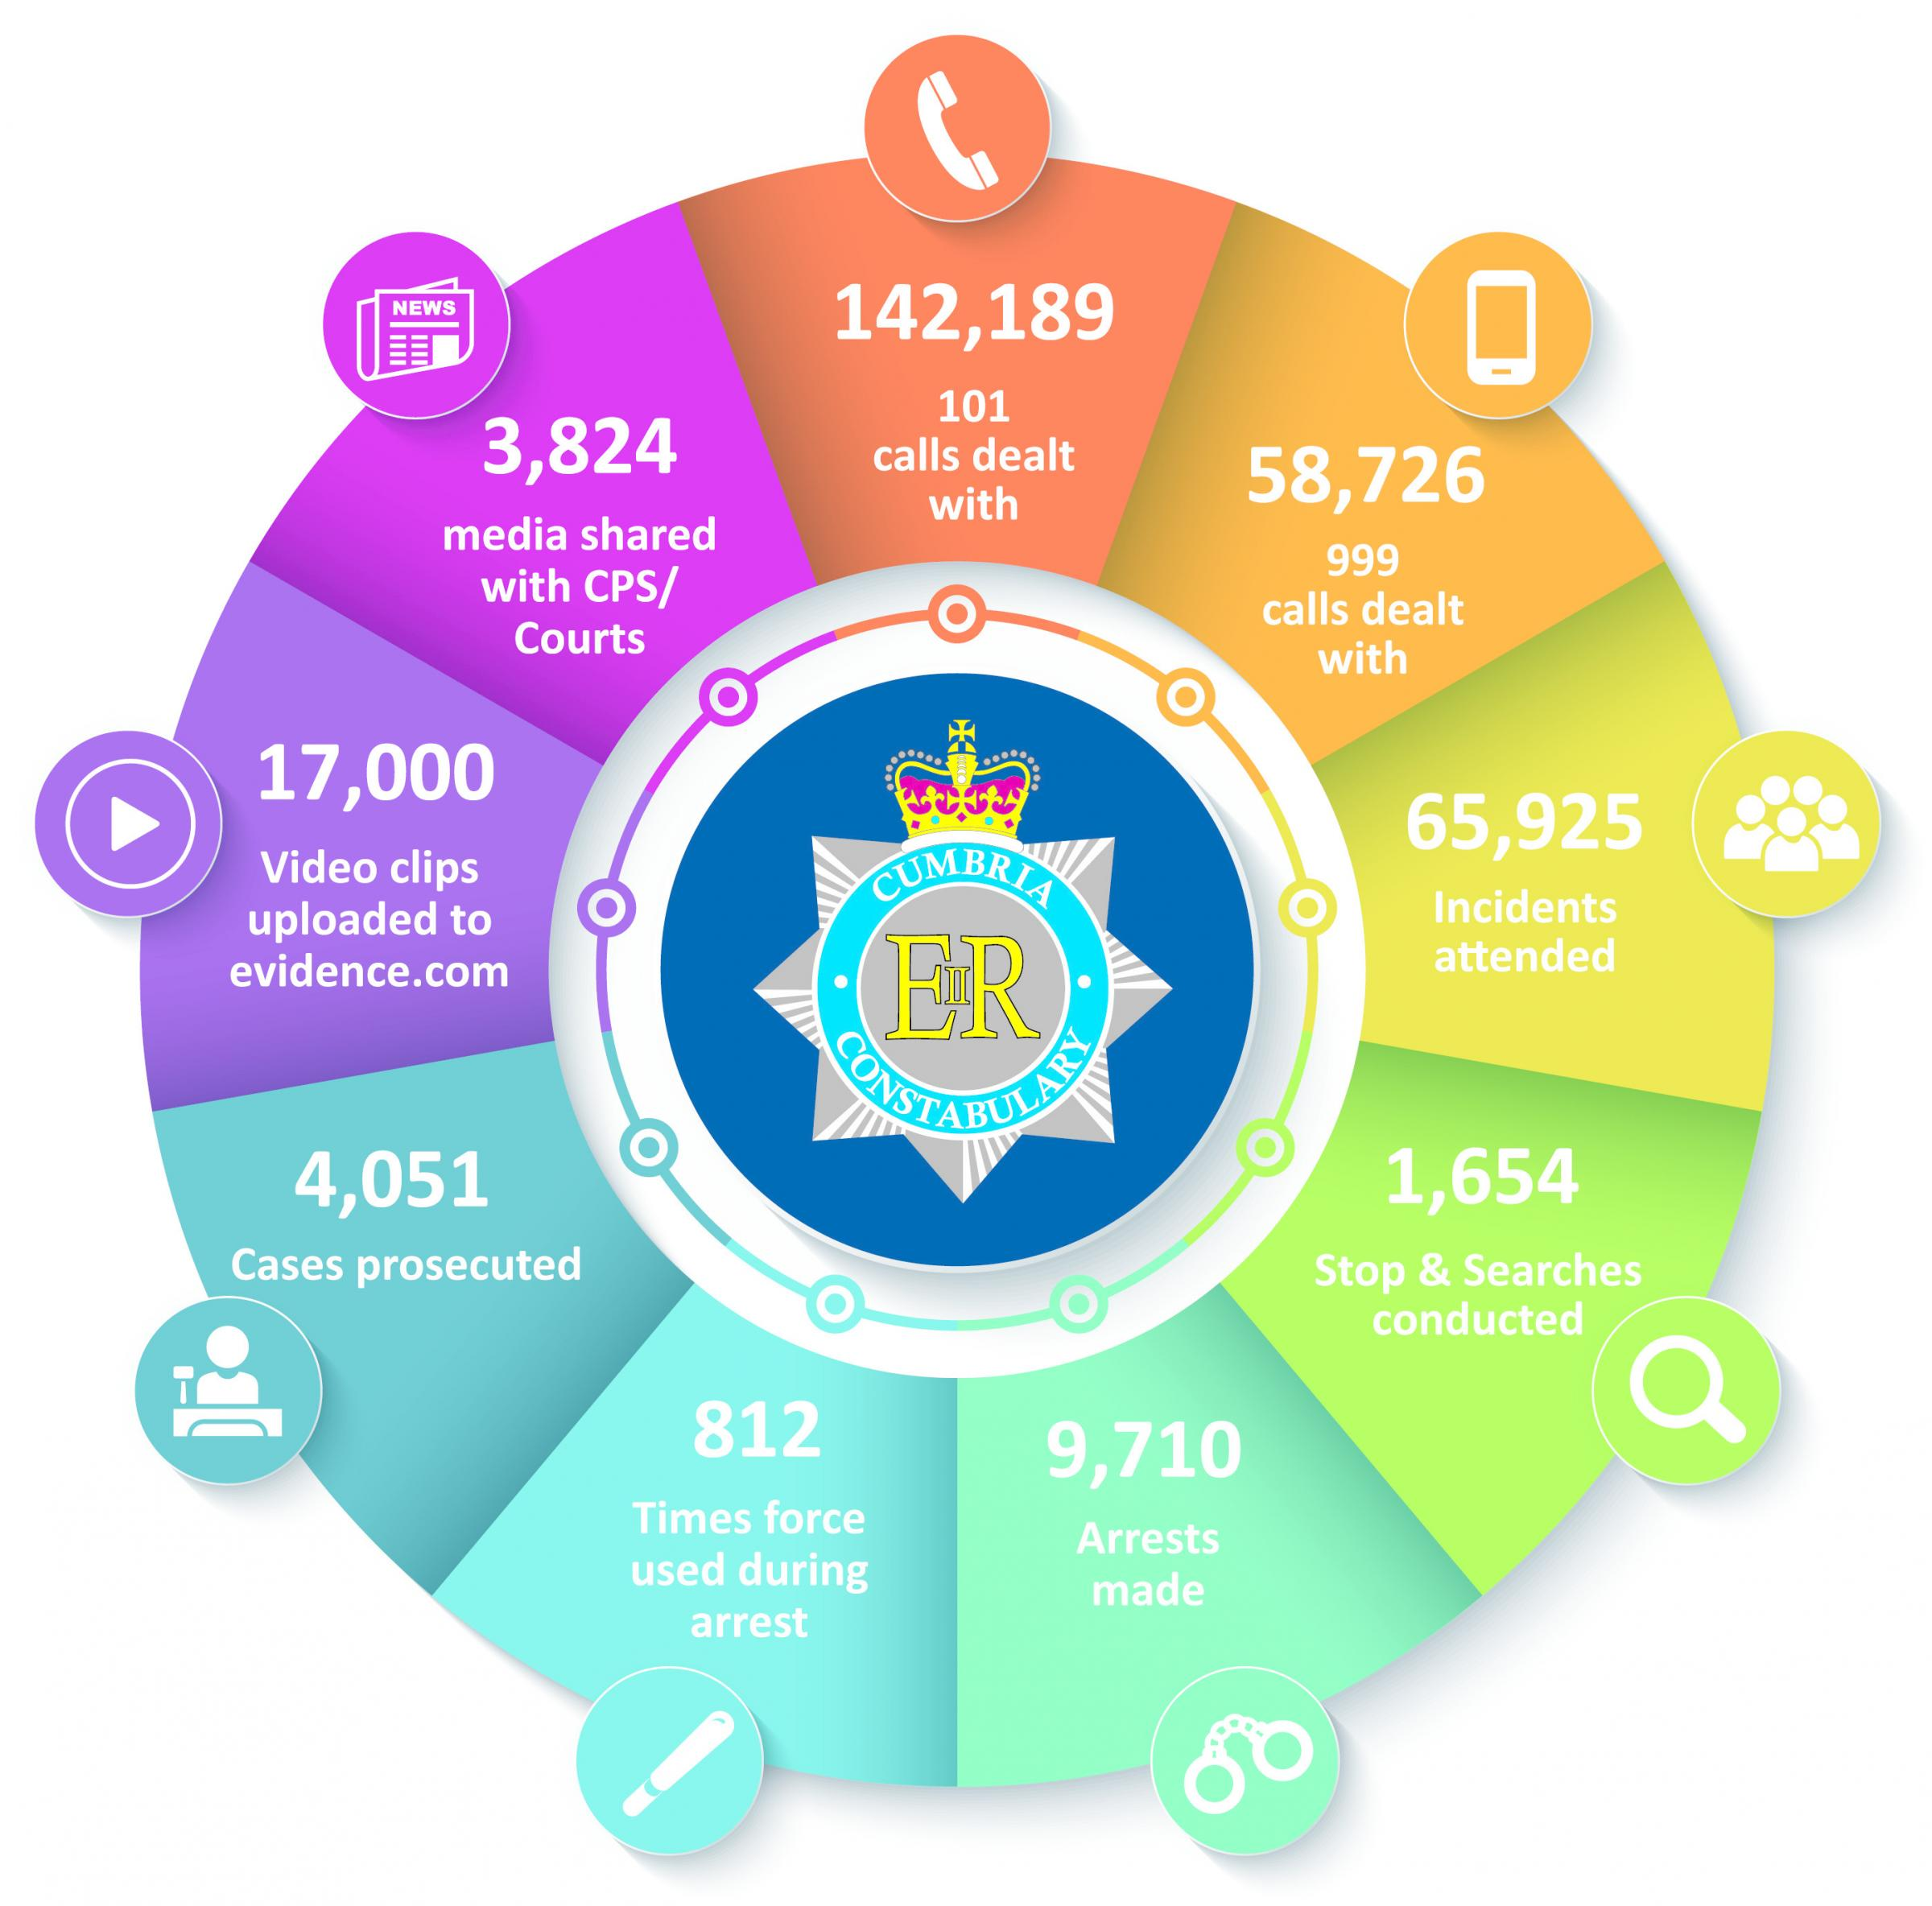 Cumbria Police Demand Statistics. Submitted on 17/04/19